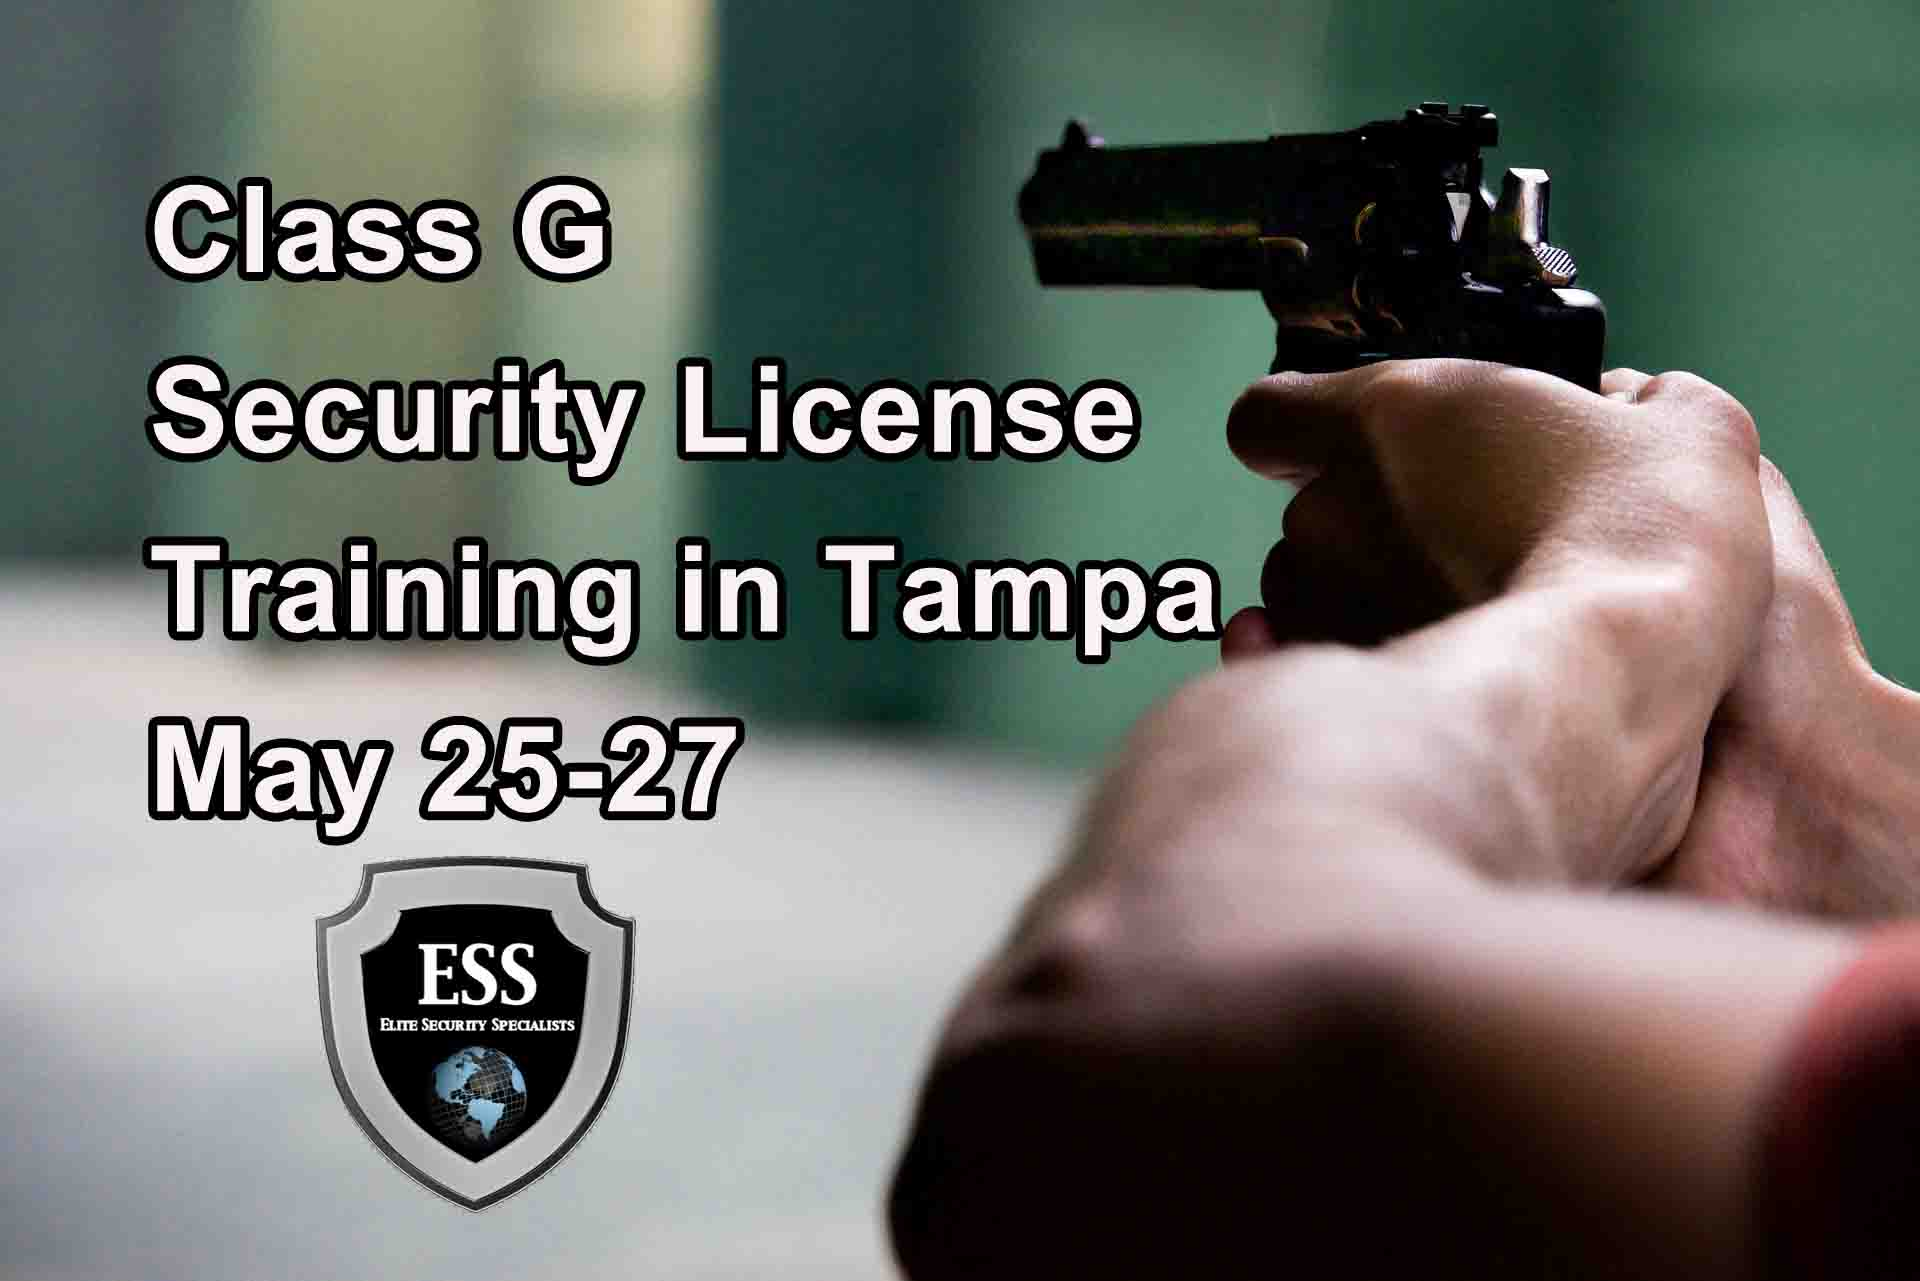 Class Class G Security License Training in Tampa May 25-27 B